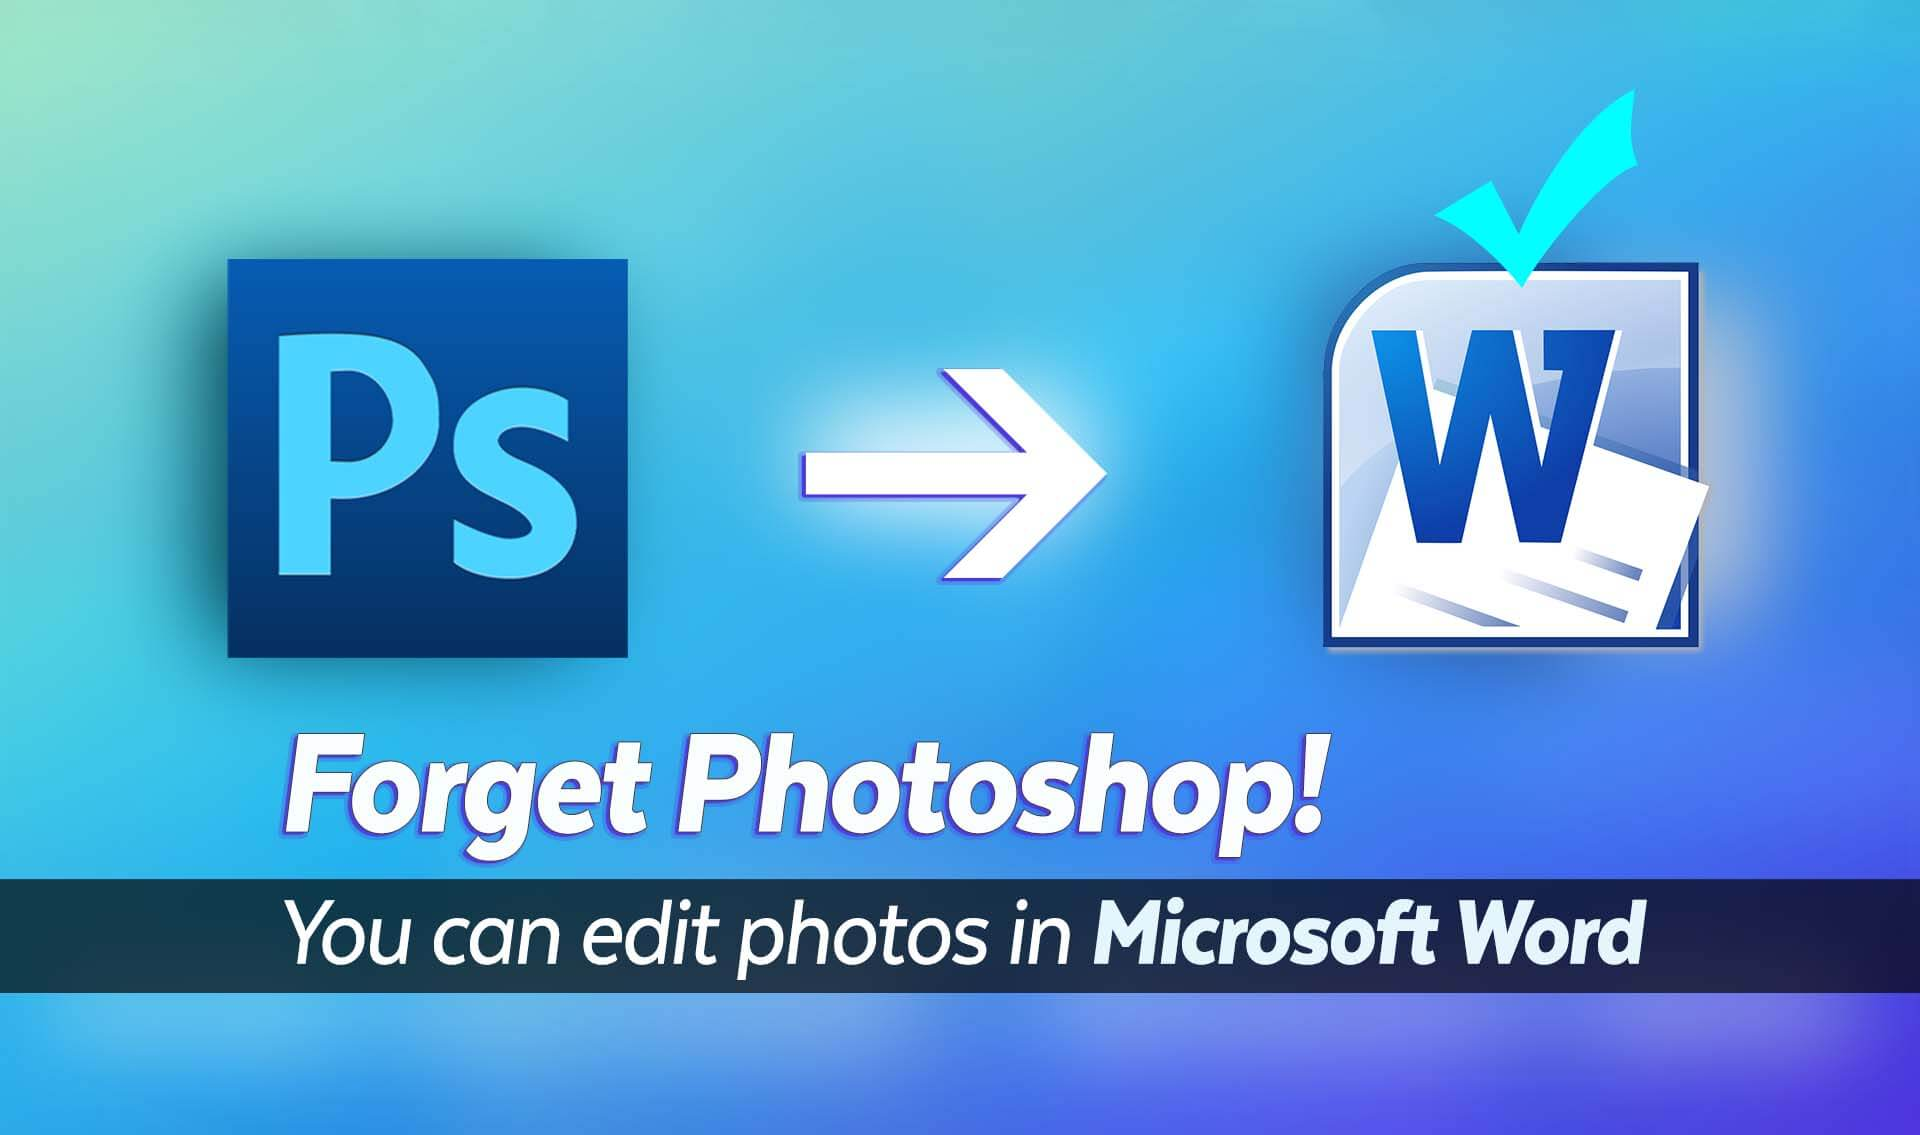 You can edit photos in Microsoft Word